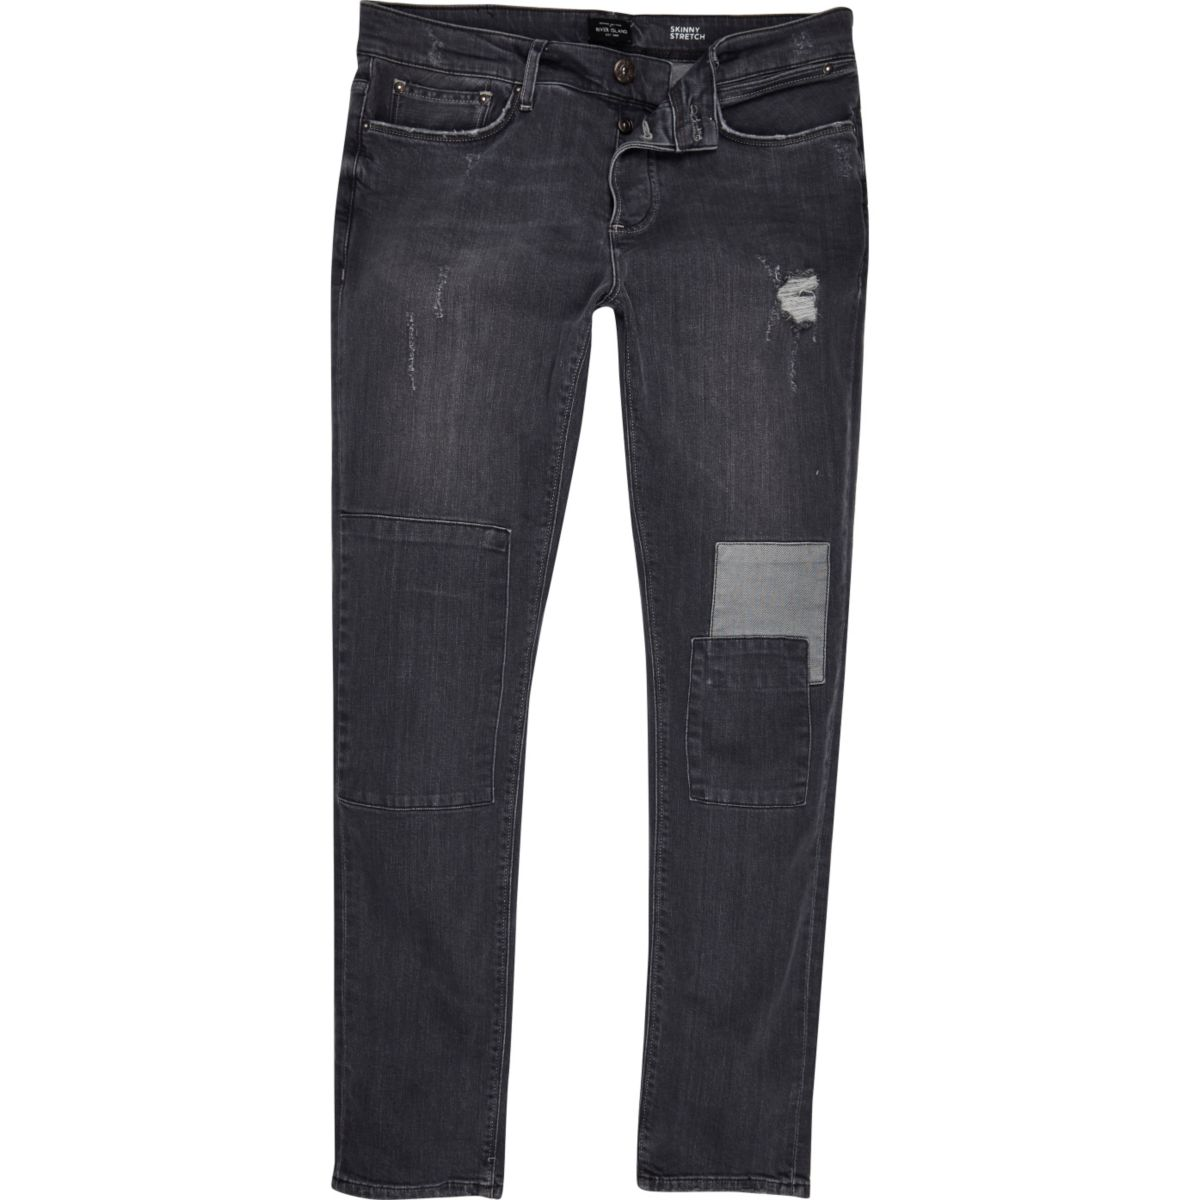 Grey skinny jeans with rips